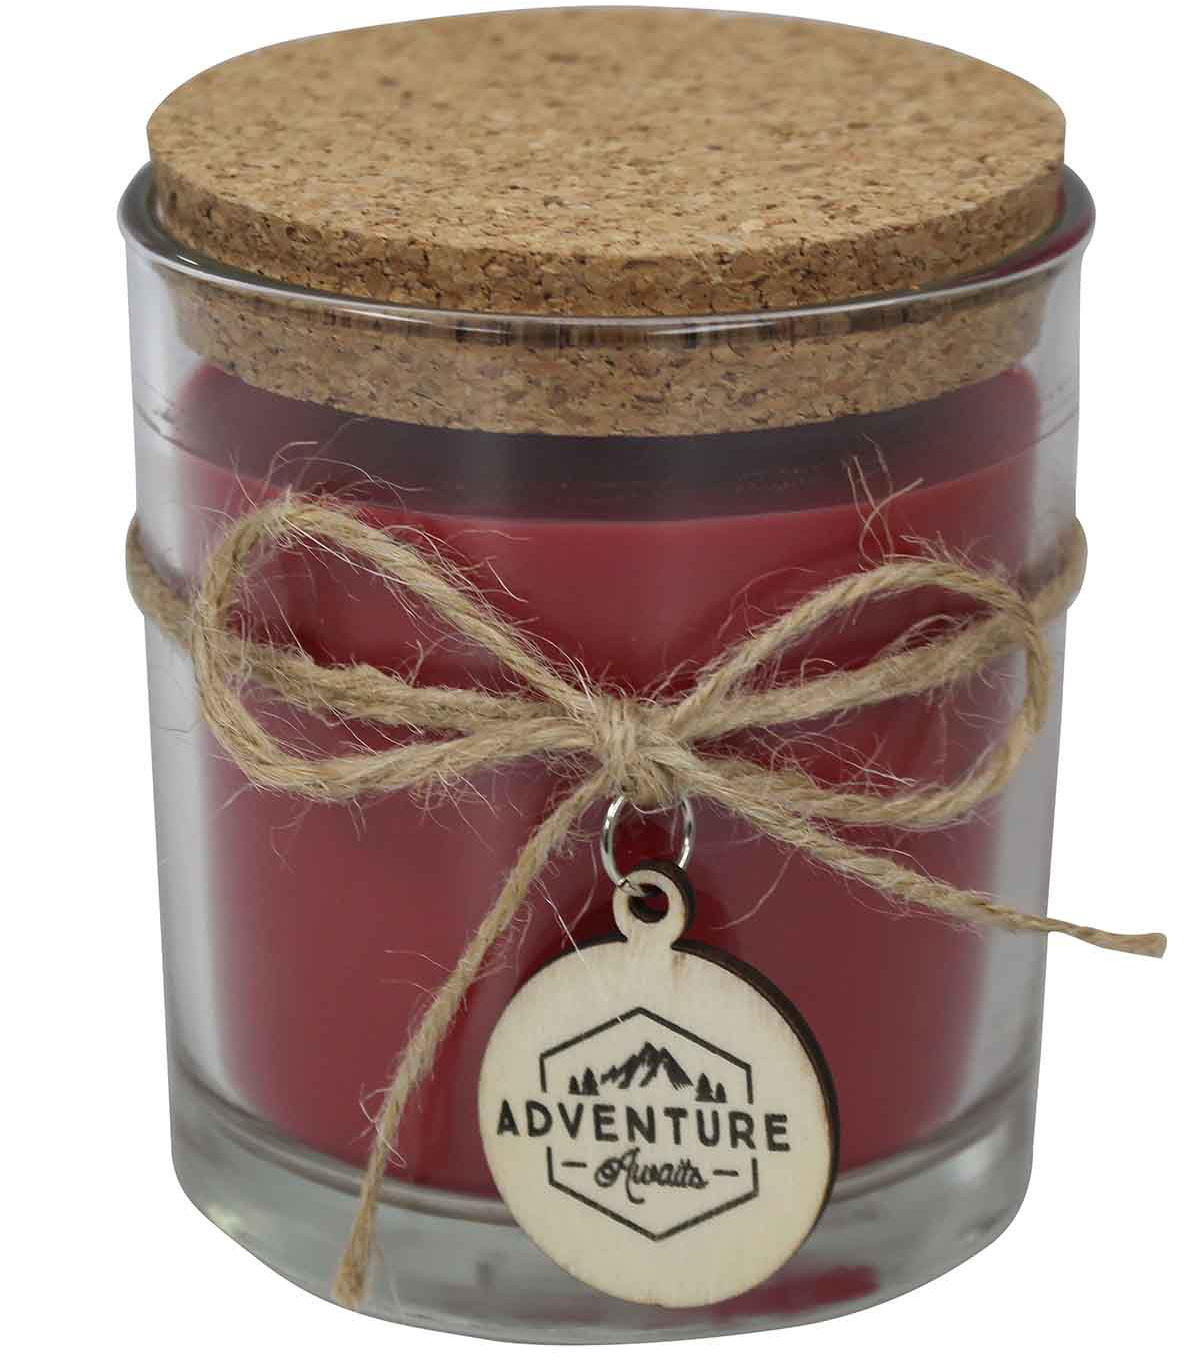 Camp Ann 3.12\u0027\u0027x3.75\u0027\u0027 Apple Vanilla Candle with Charm & Cork Lid-Red